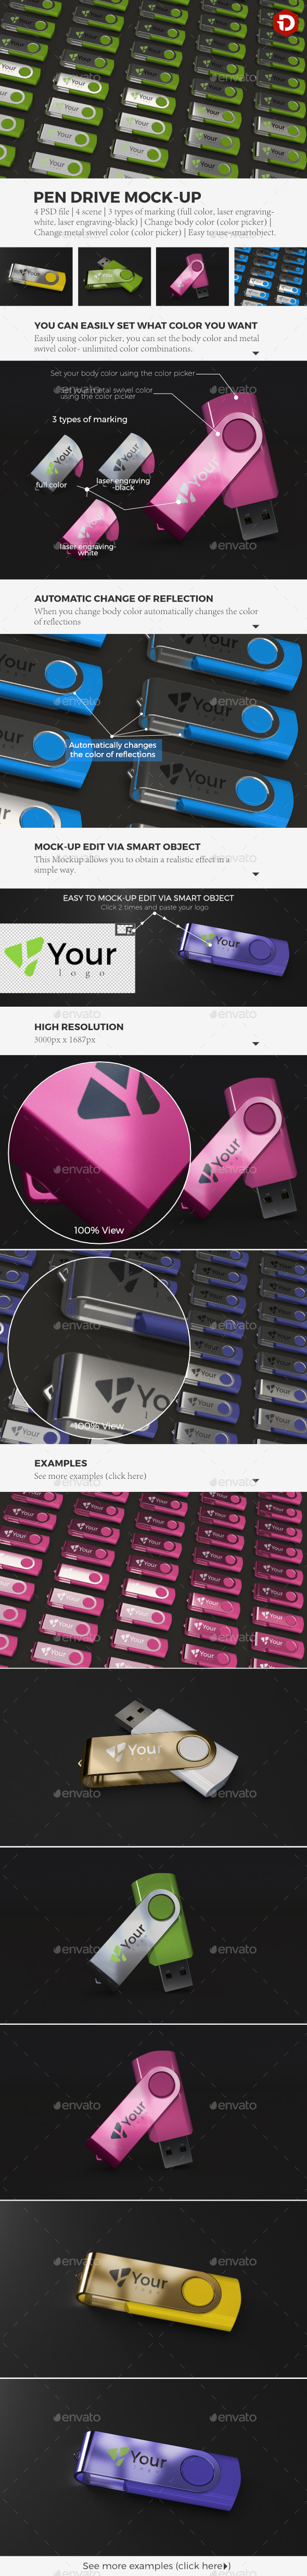 Pen Drive Mock-Up - Miscellaneous Product Mock-Ups